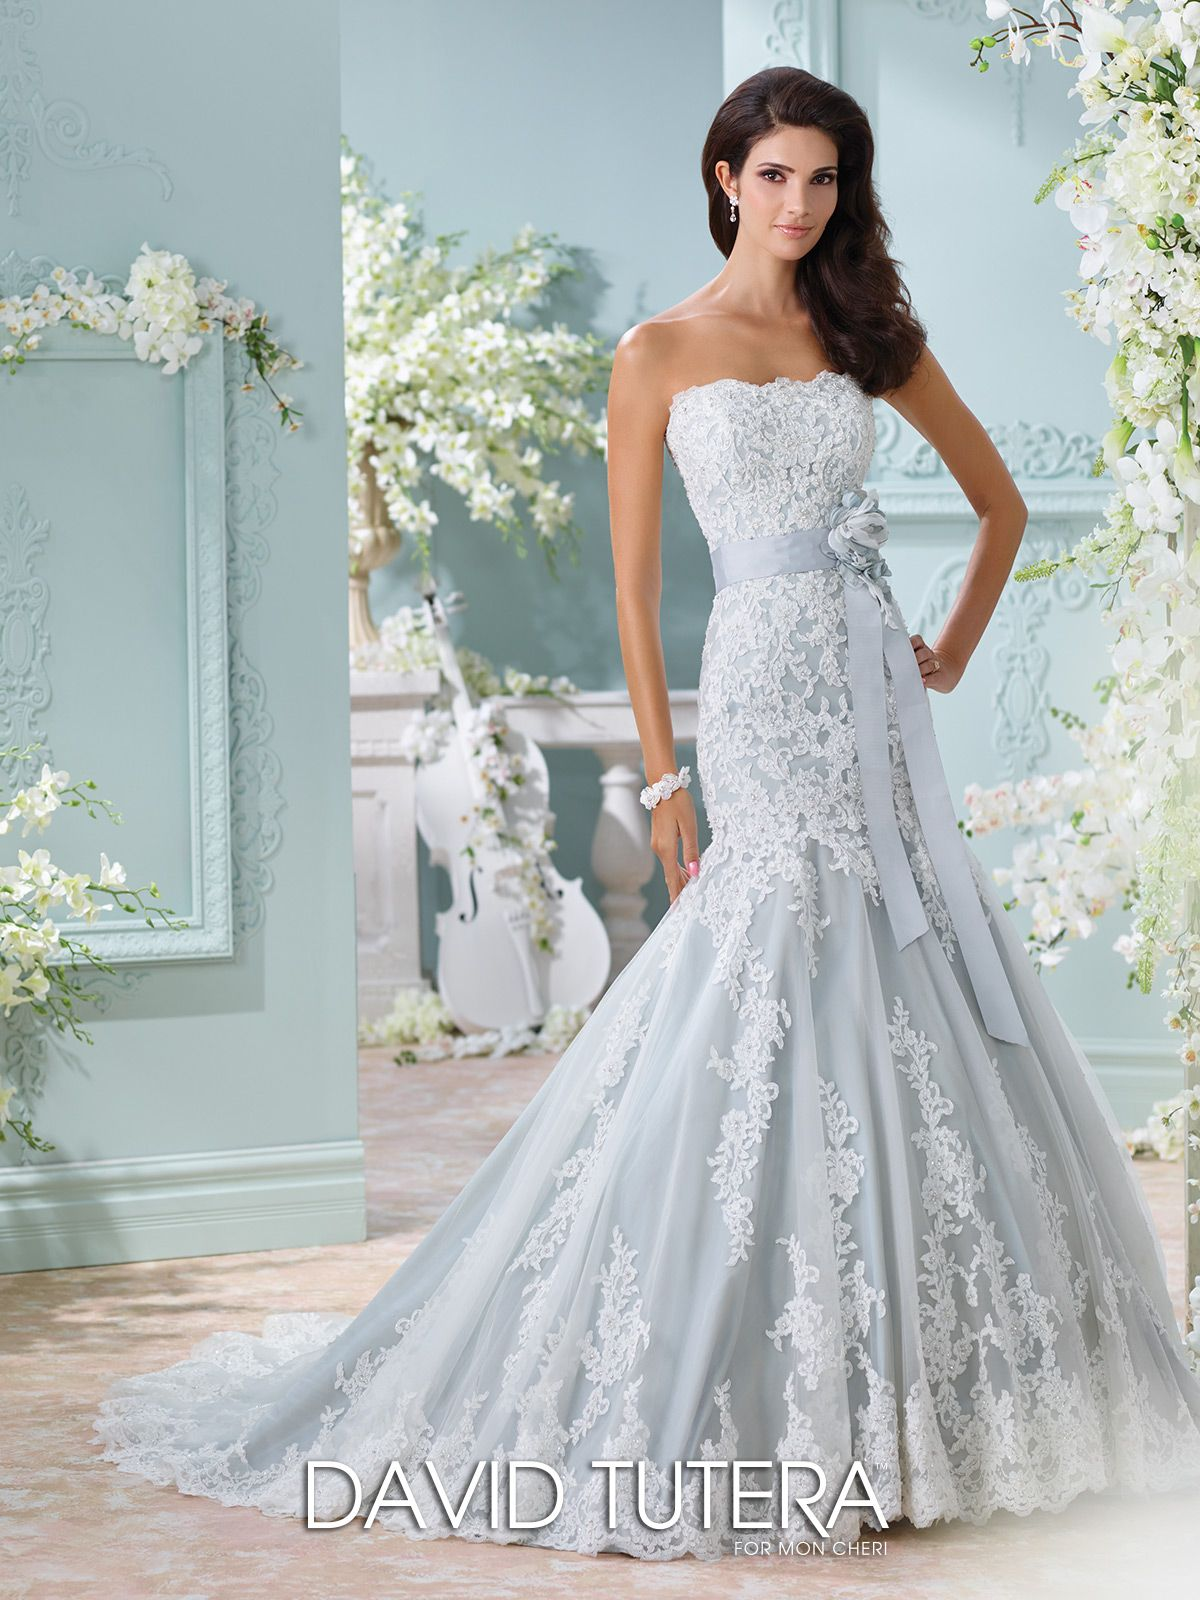 Strapless Hand-Beaded Lace Trumpet Wedding Dress-116225 Thea | Blue ...